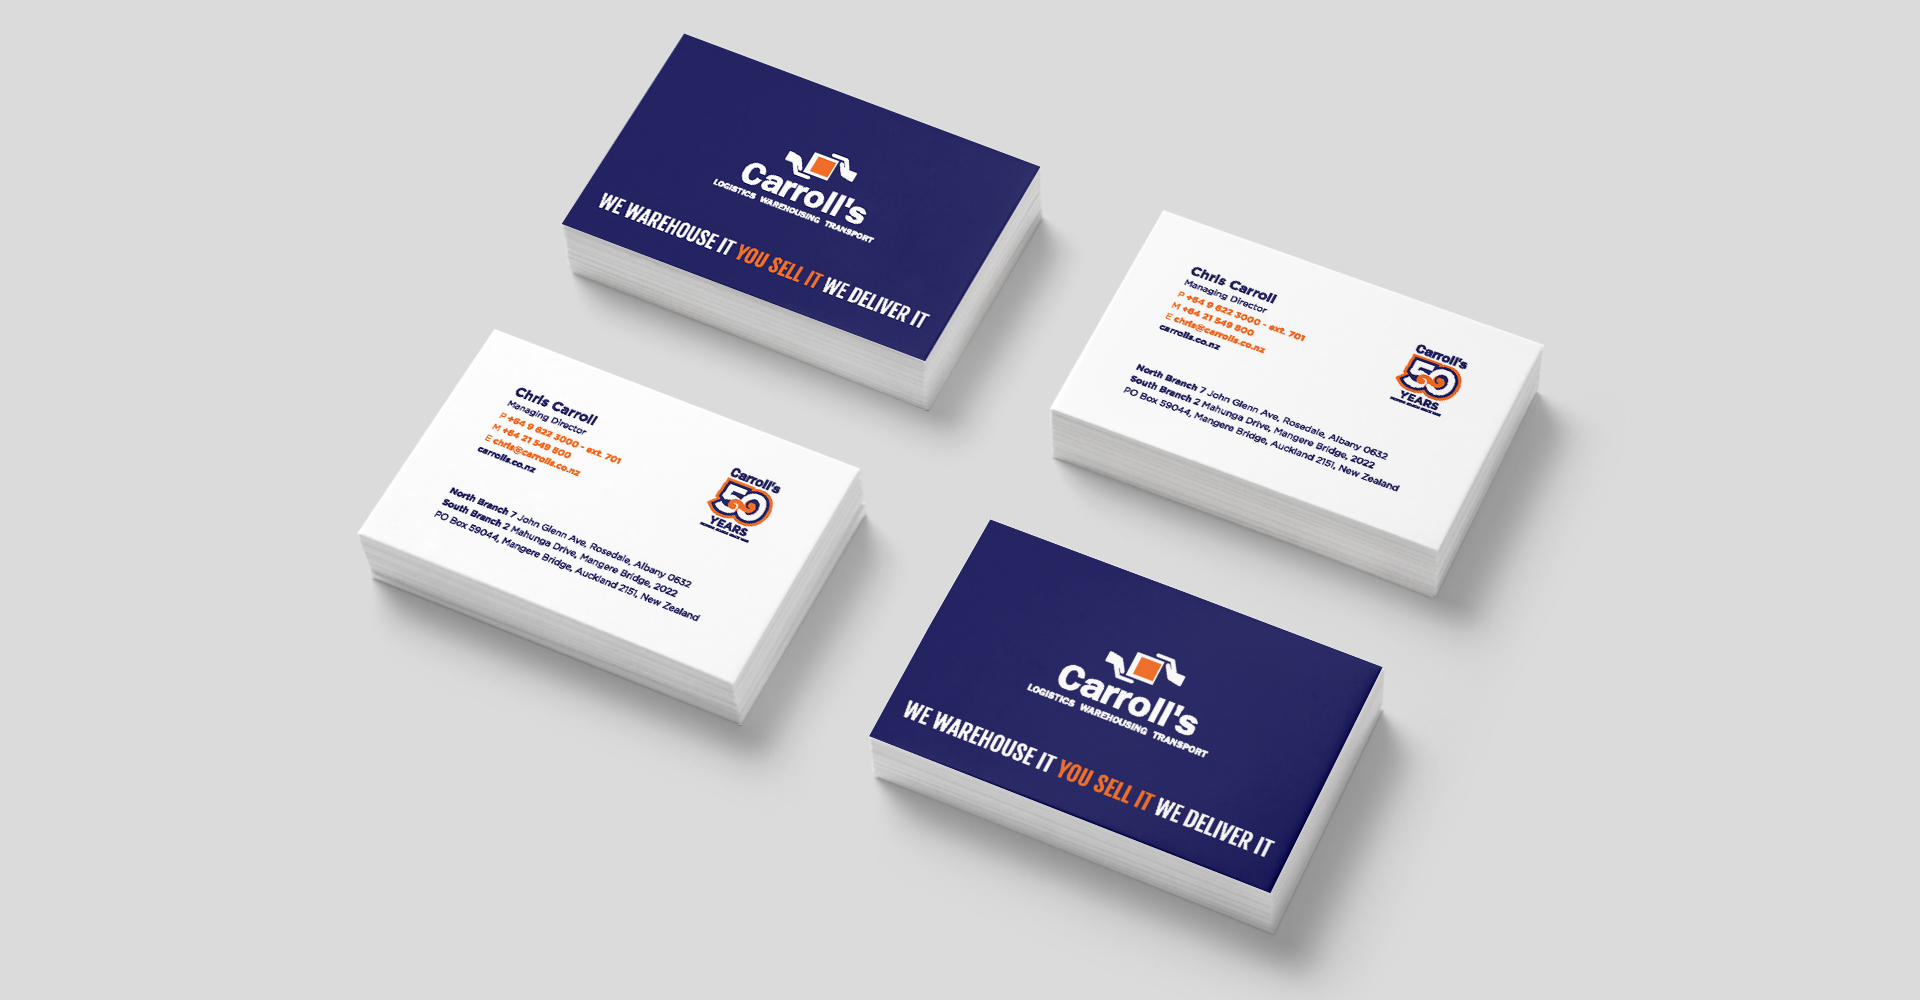 Carrols_business_promotional_design_business_cards_advertsiement_graphic_design_advertsing_branding_packaging_design_agency